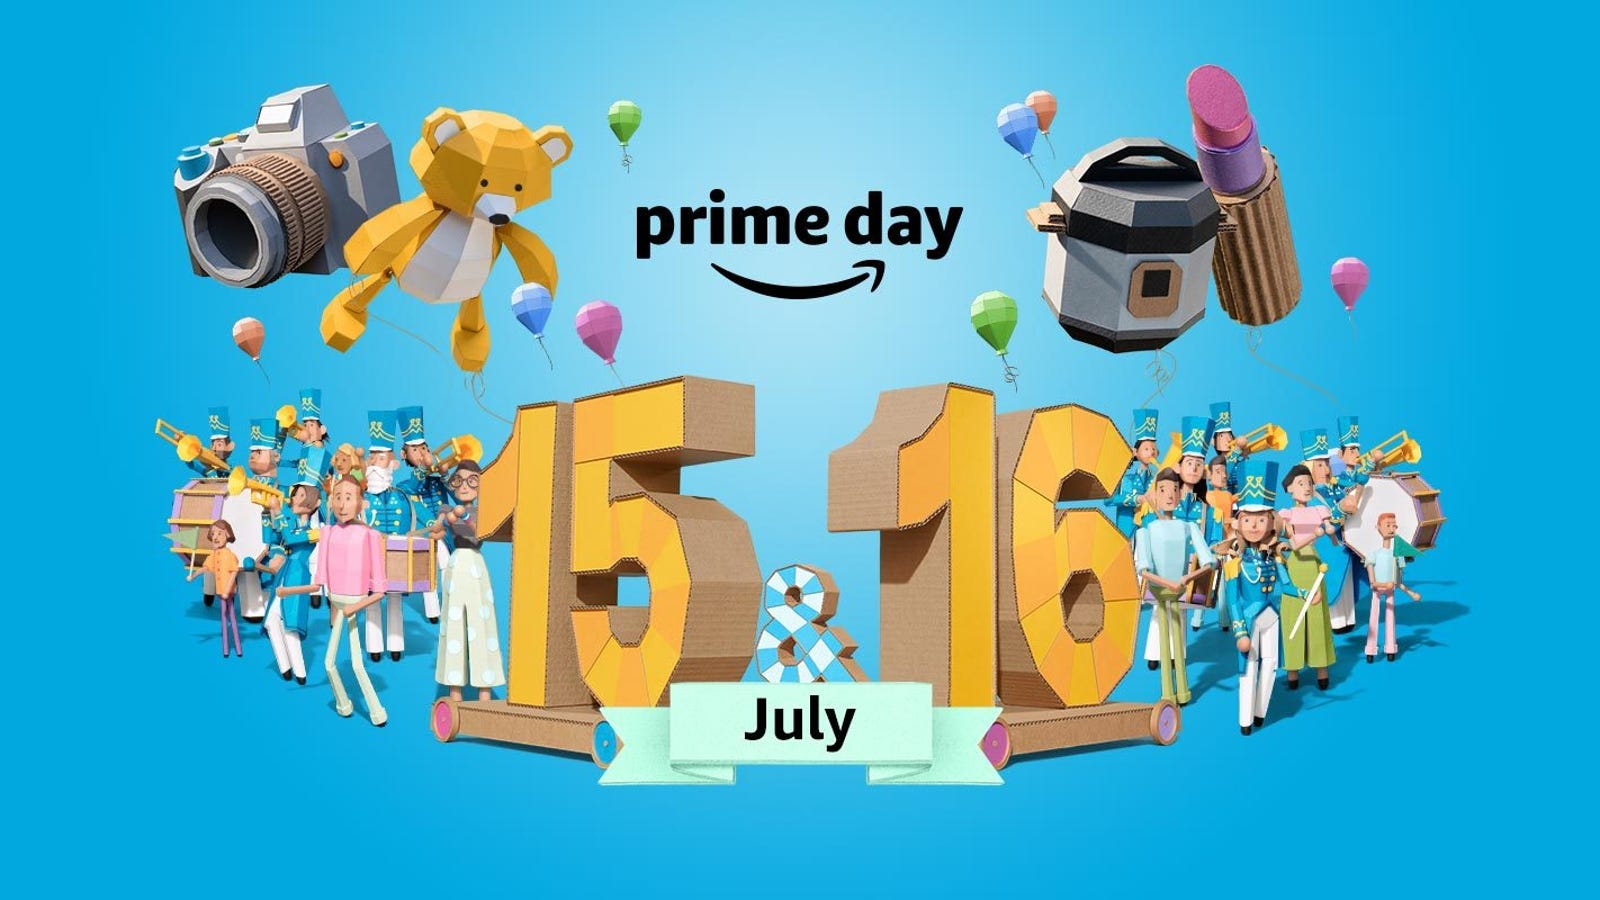 Amazon Prime Day 2019 Is July 15-16Amazon Prime Day